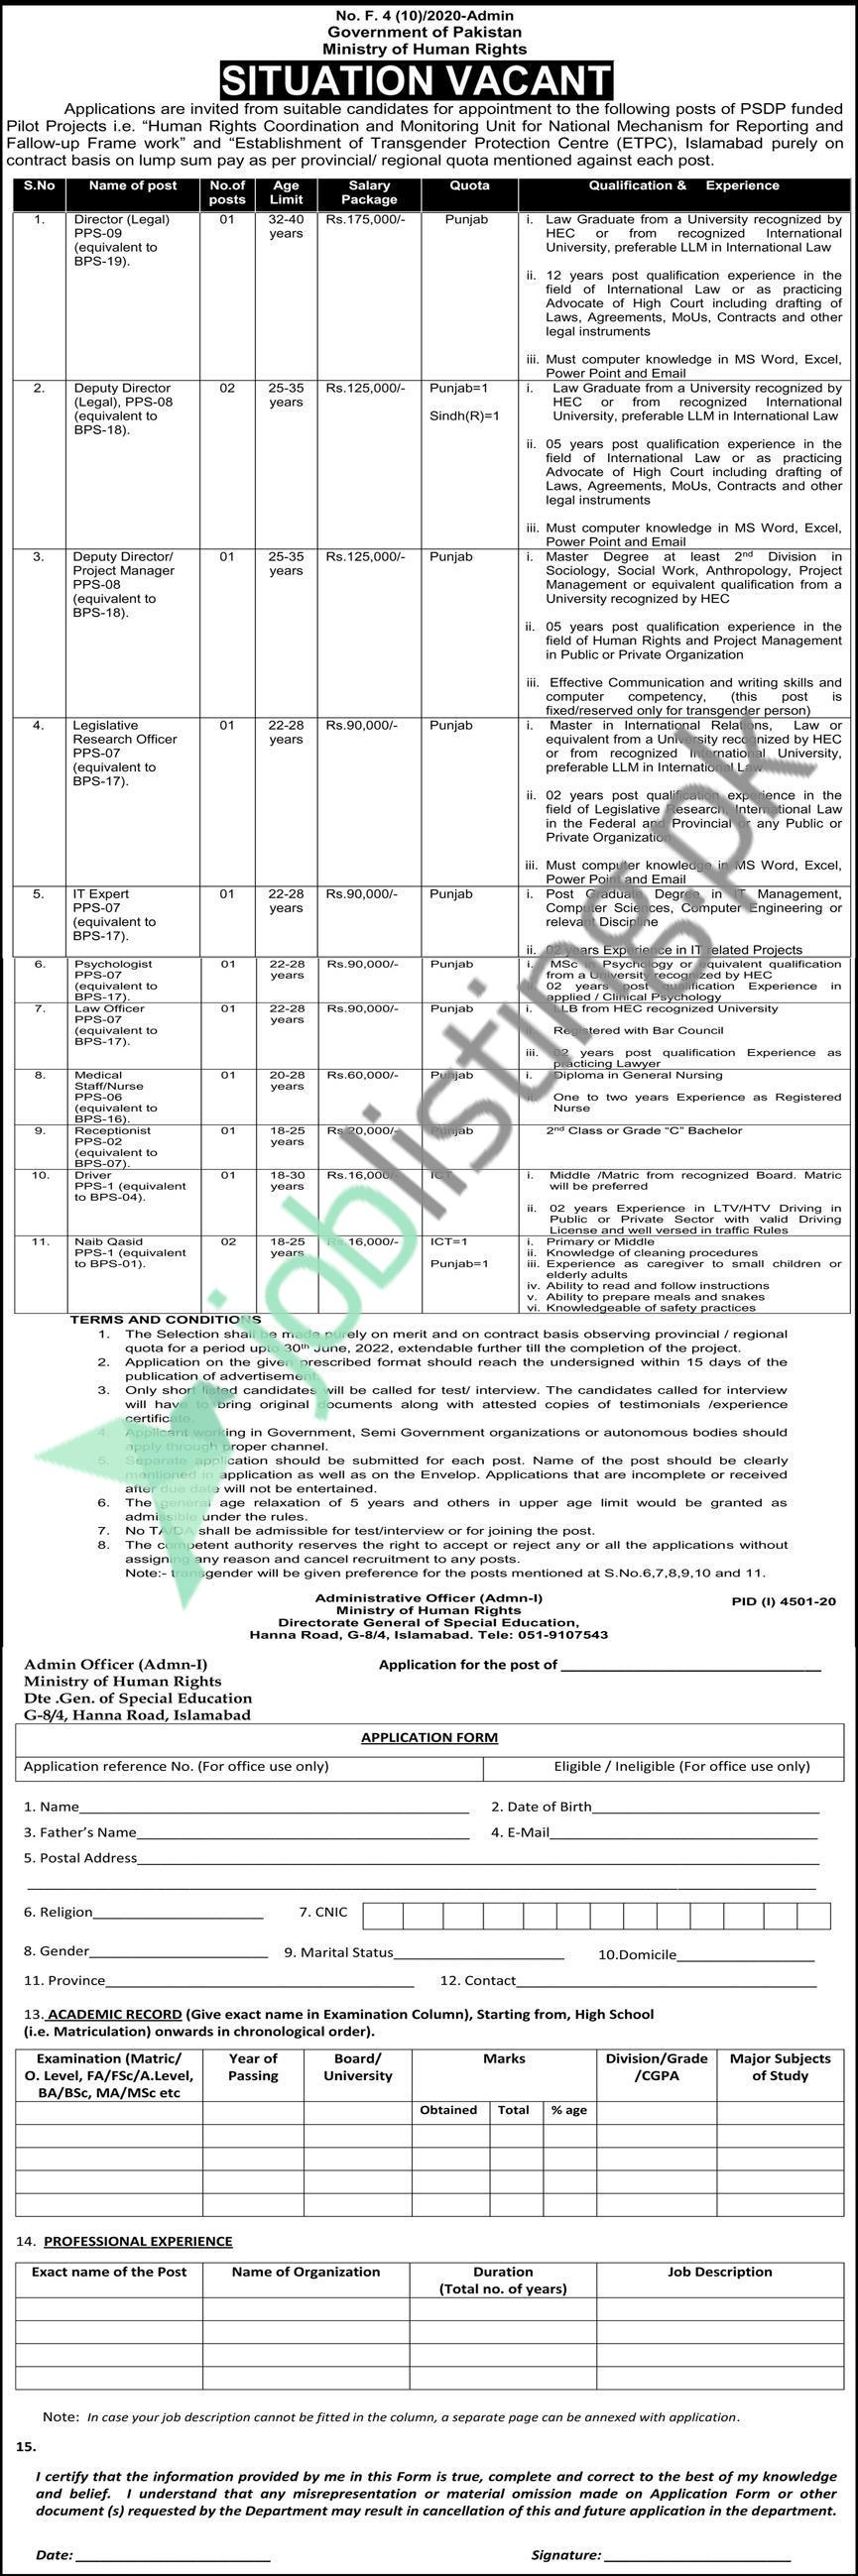 Ministry of Human Rights Pakistan Jobs 2021 BPS-19 to BPS-01 Latest Vacancies